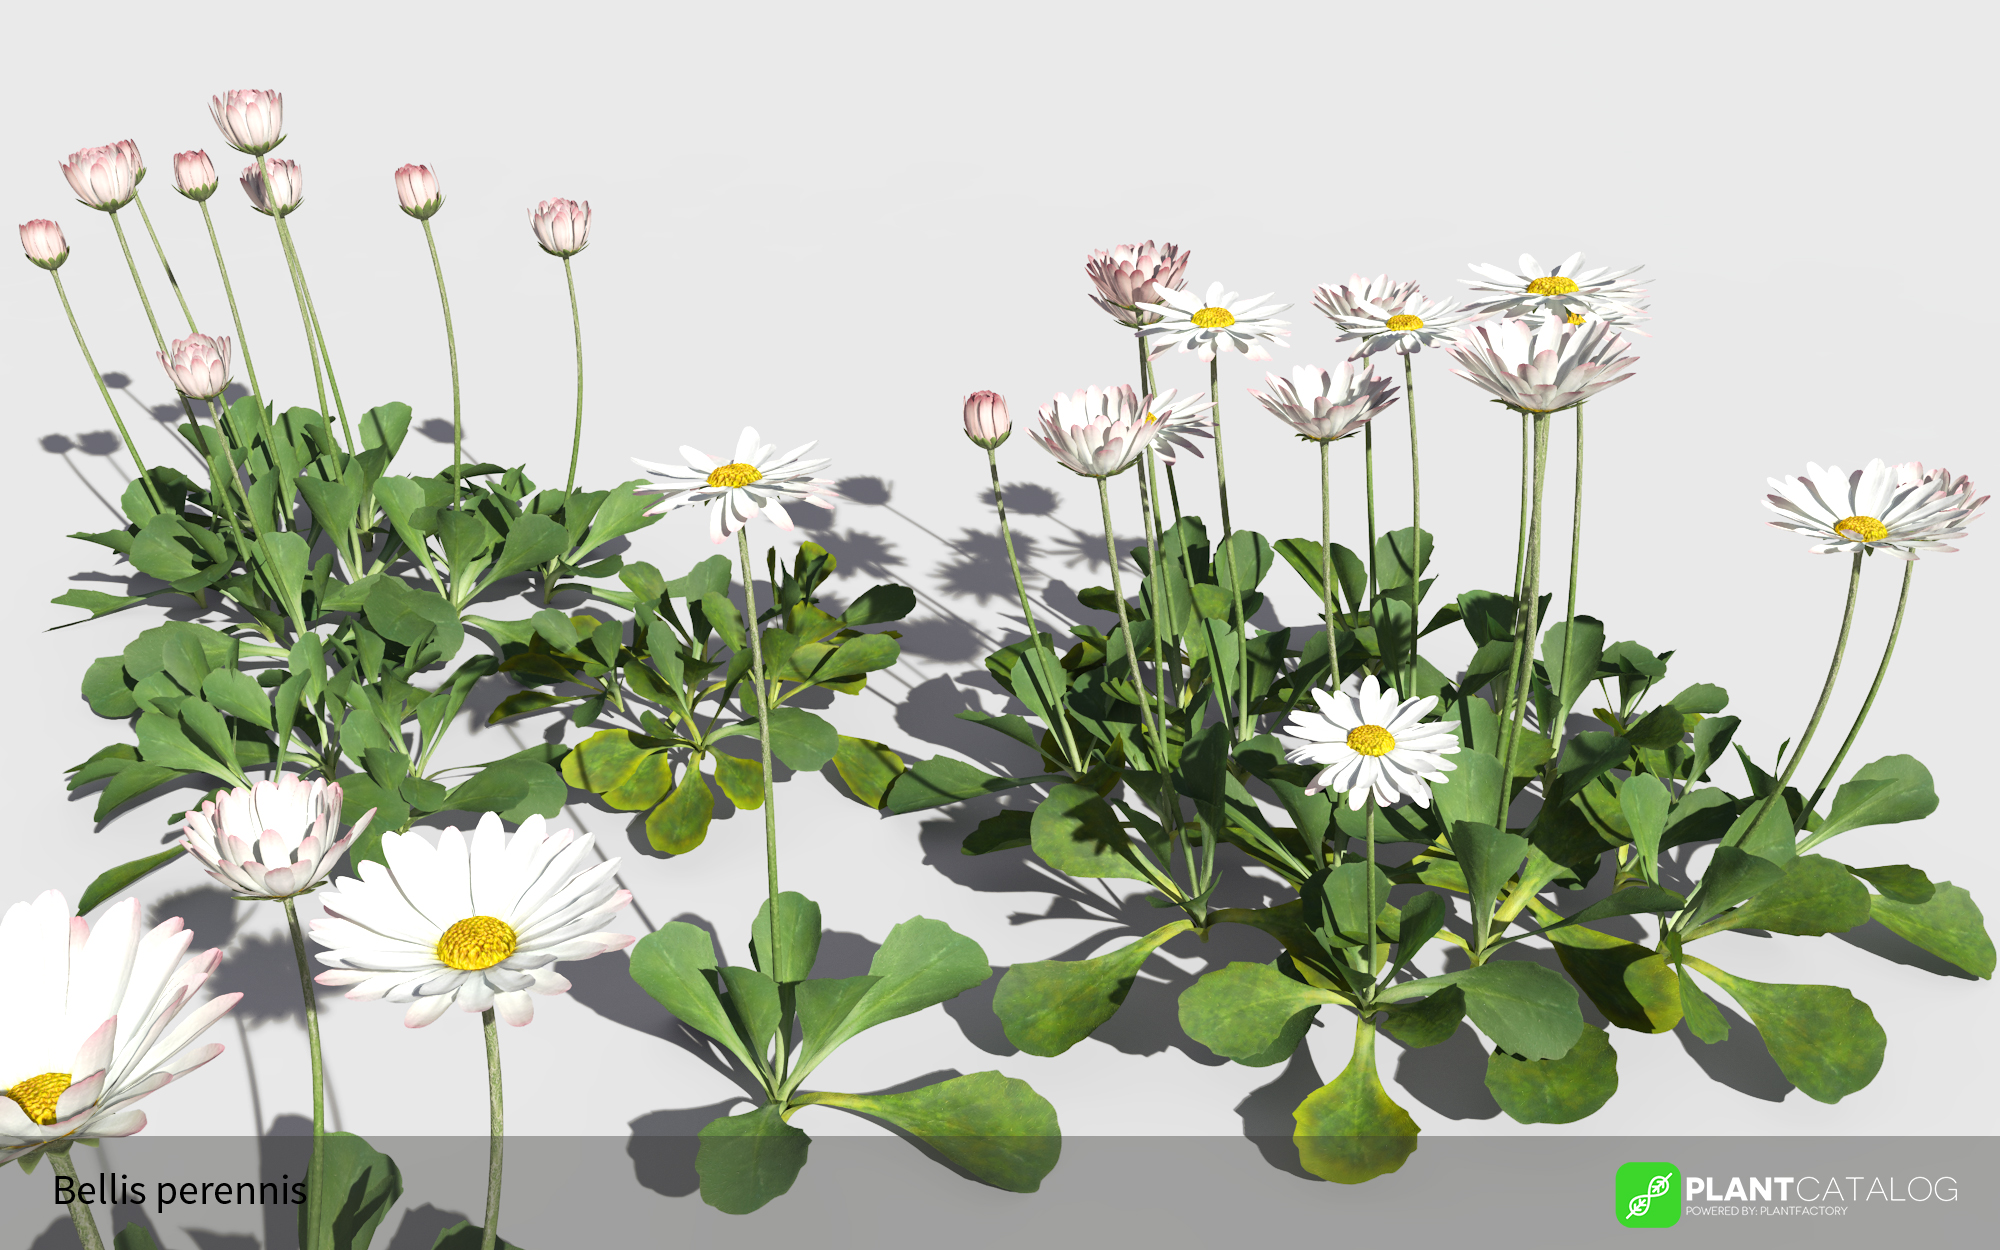 3D model of the Common daisy - Bellis perennis - from the PlantCatalog, rendered in VUE